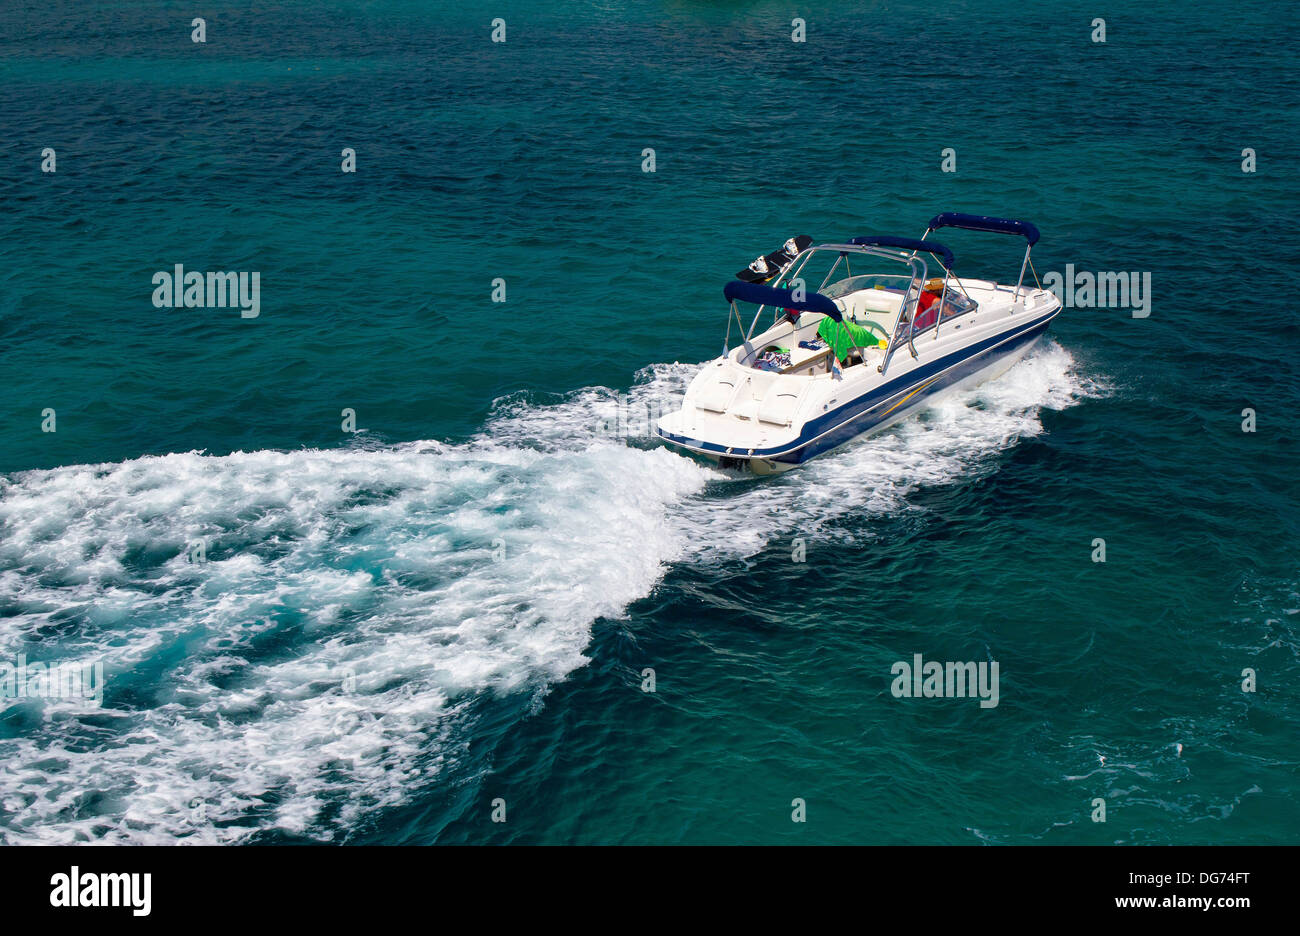 Powerboat on blue open sea water - Stock Image